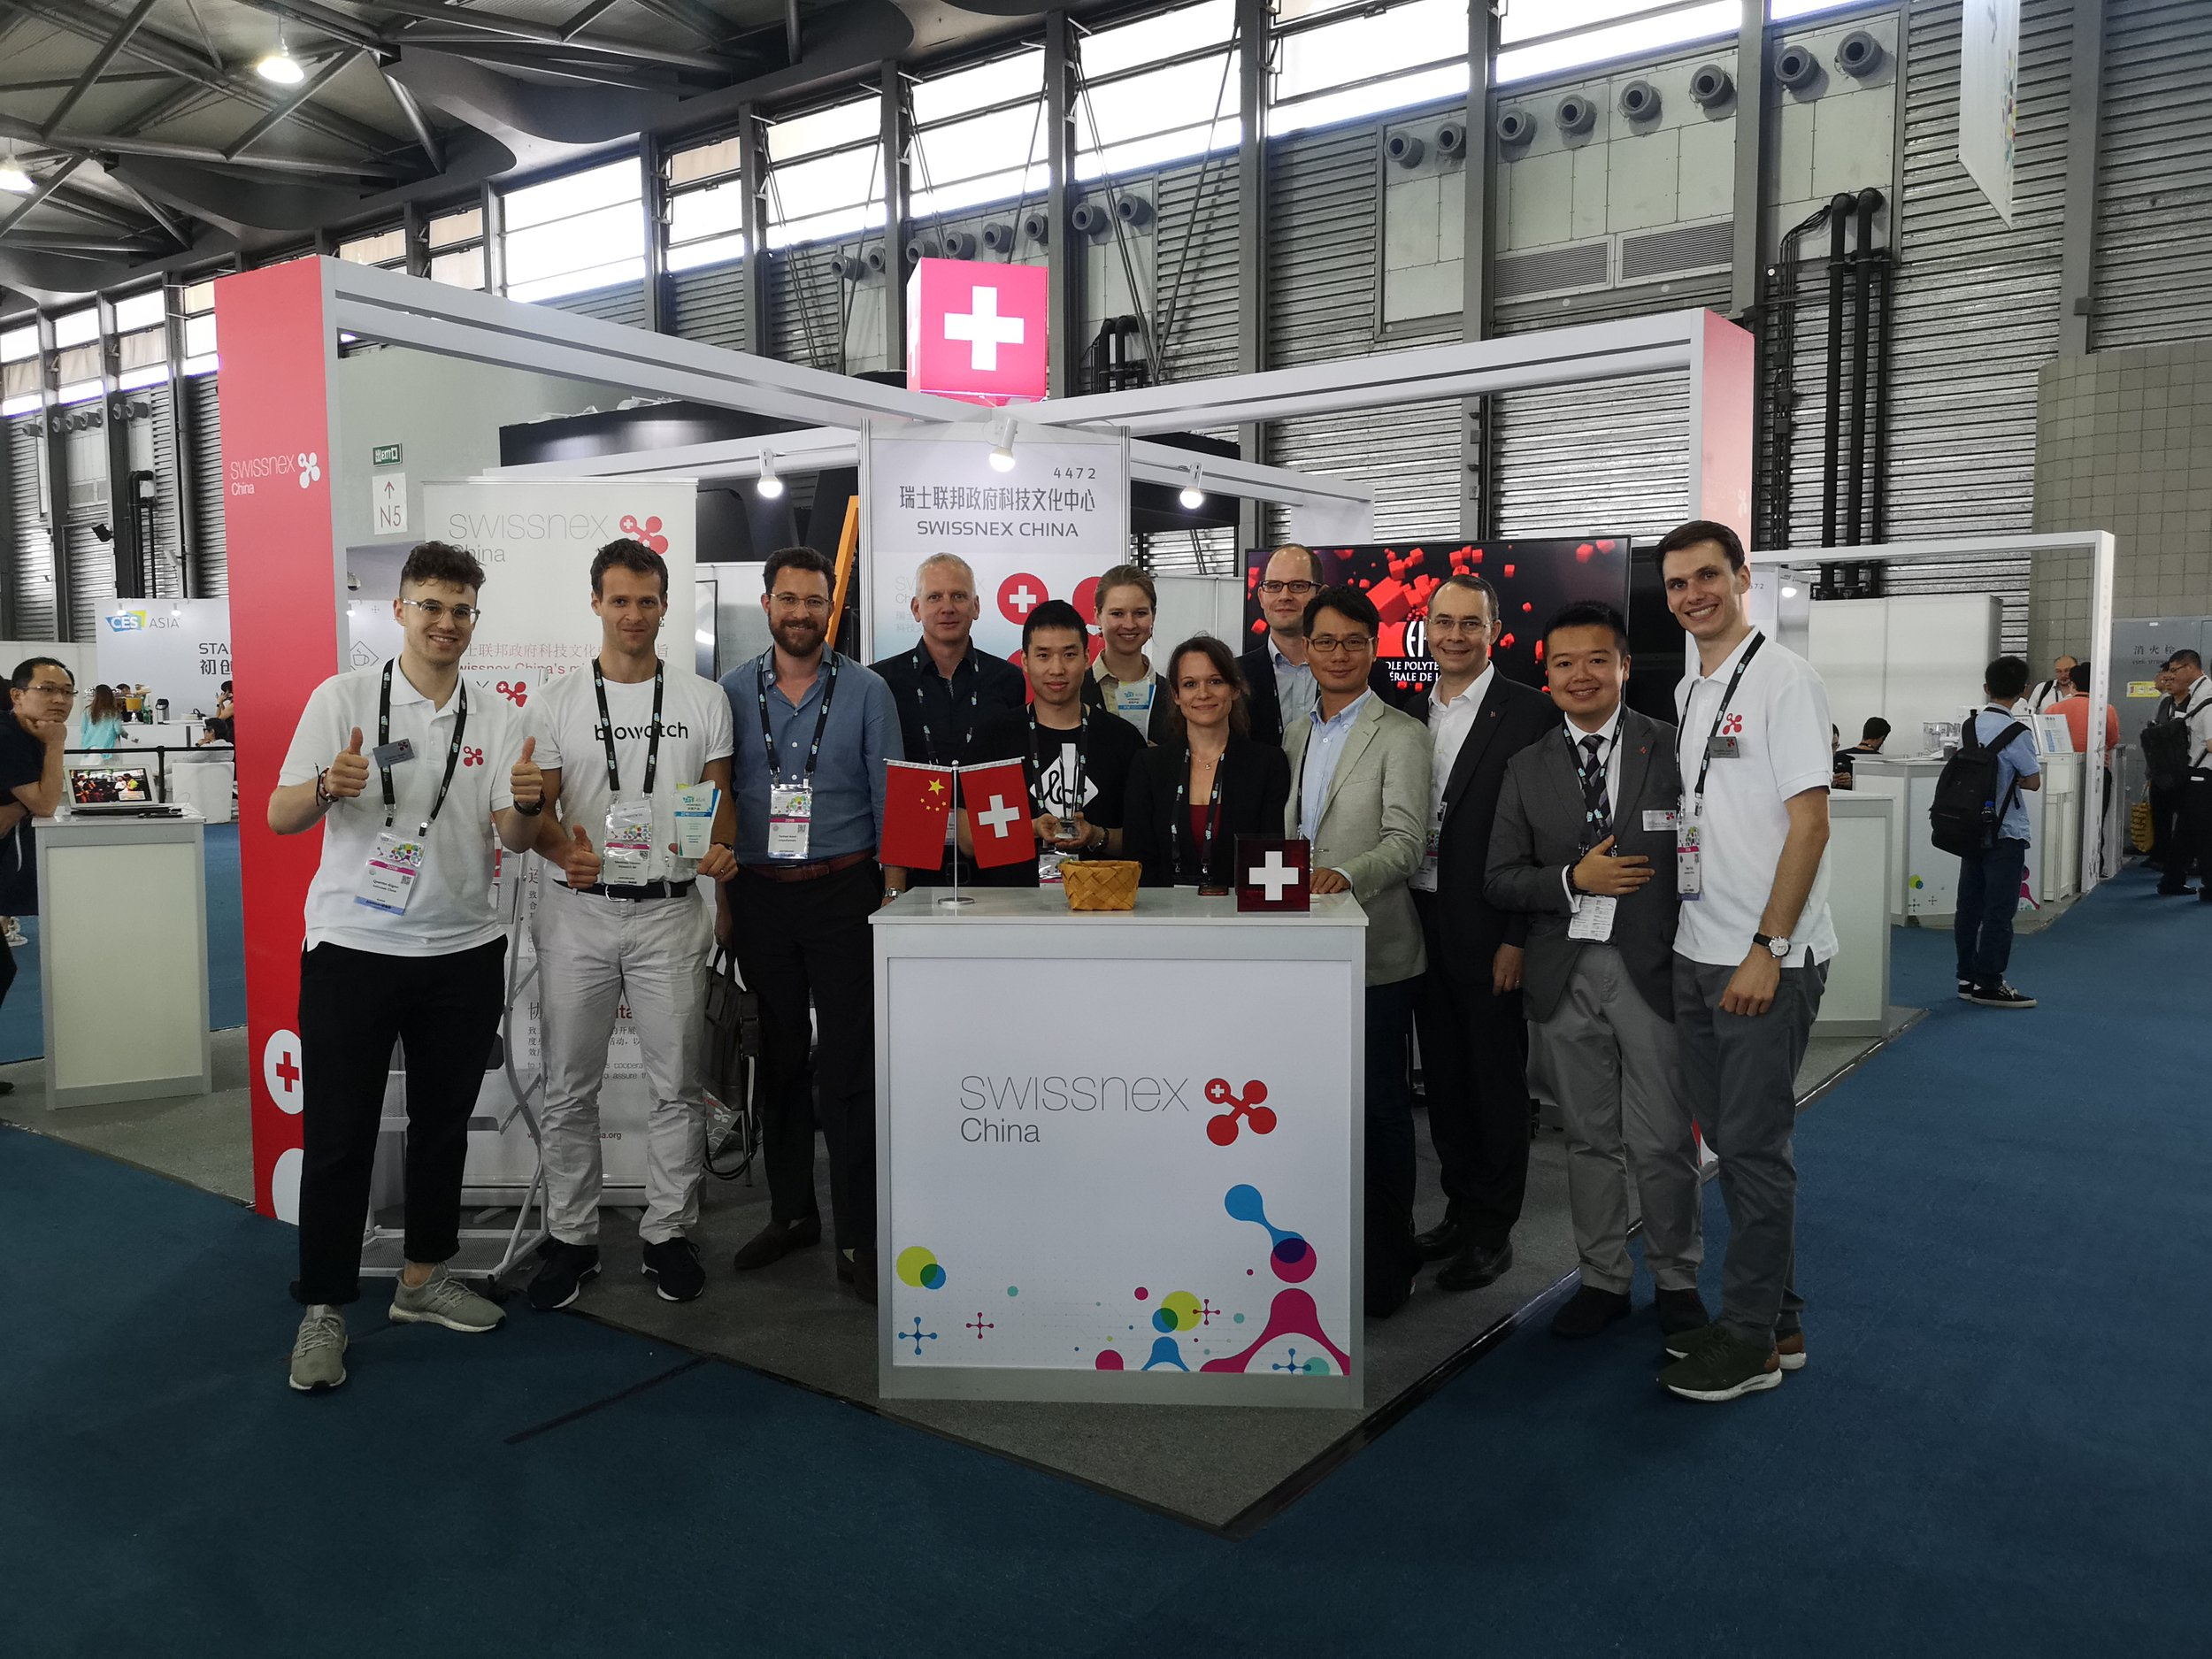 Meet the incredible team behind the Swiss Startups Pavilion at CES Asia 2018.